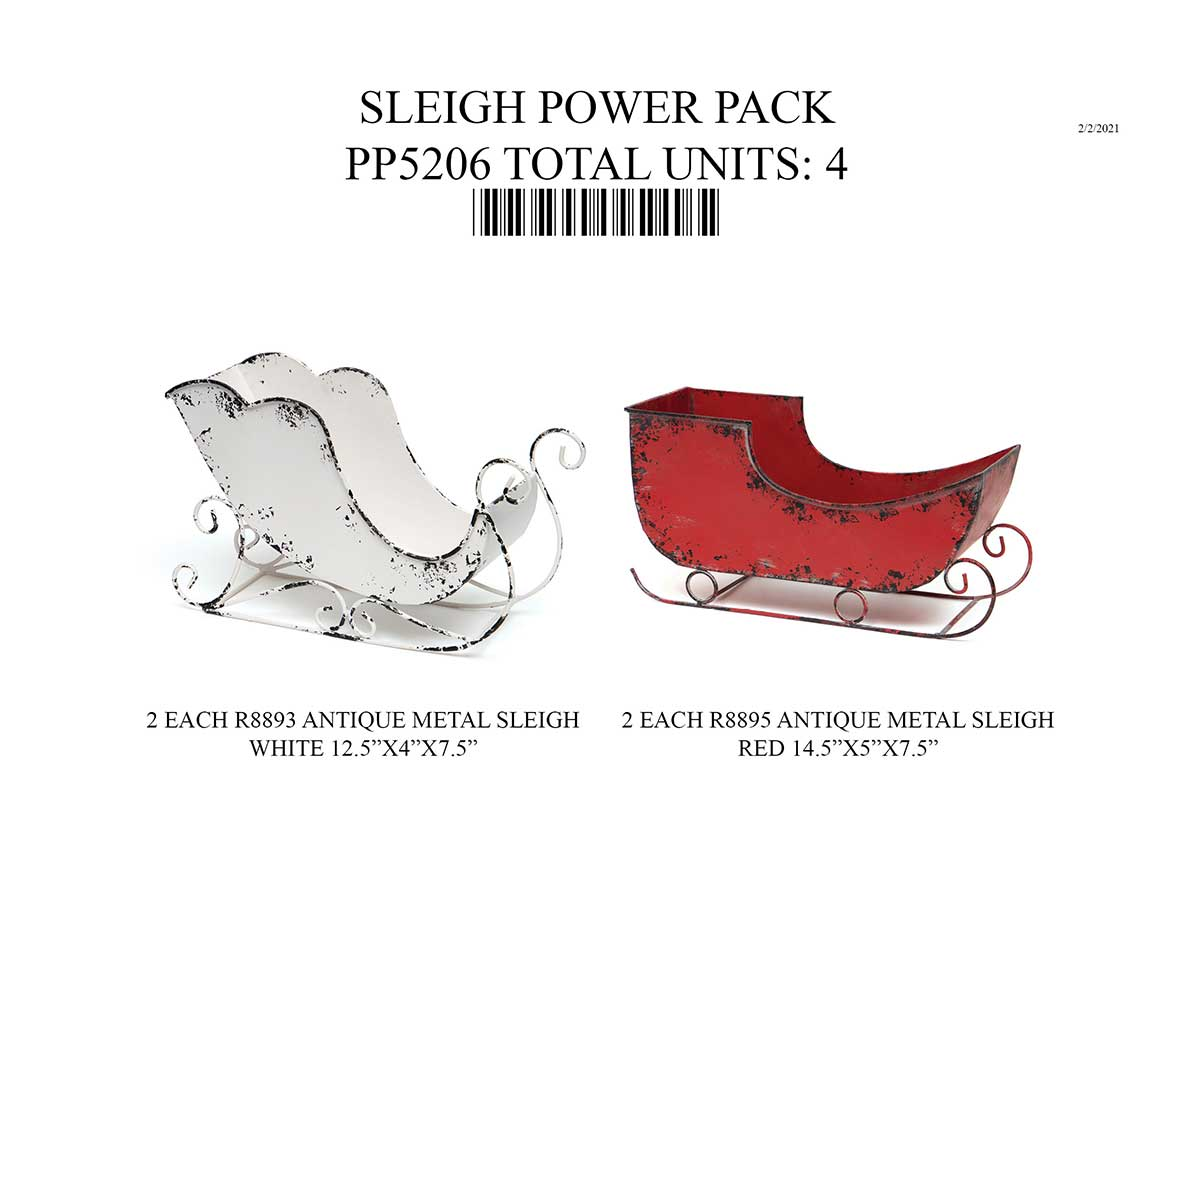 SLEIGH POWER PACK 4 UNITS PP5206